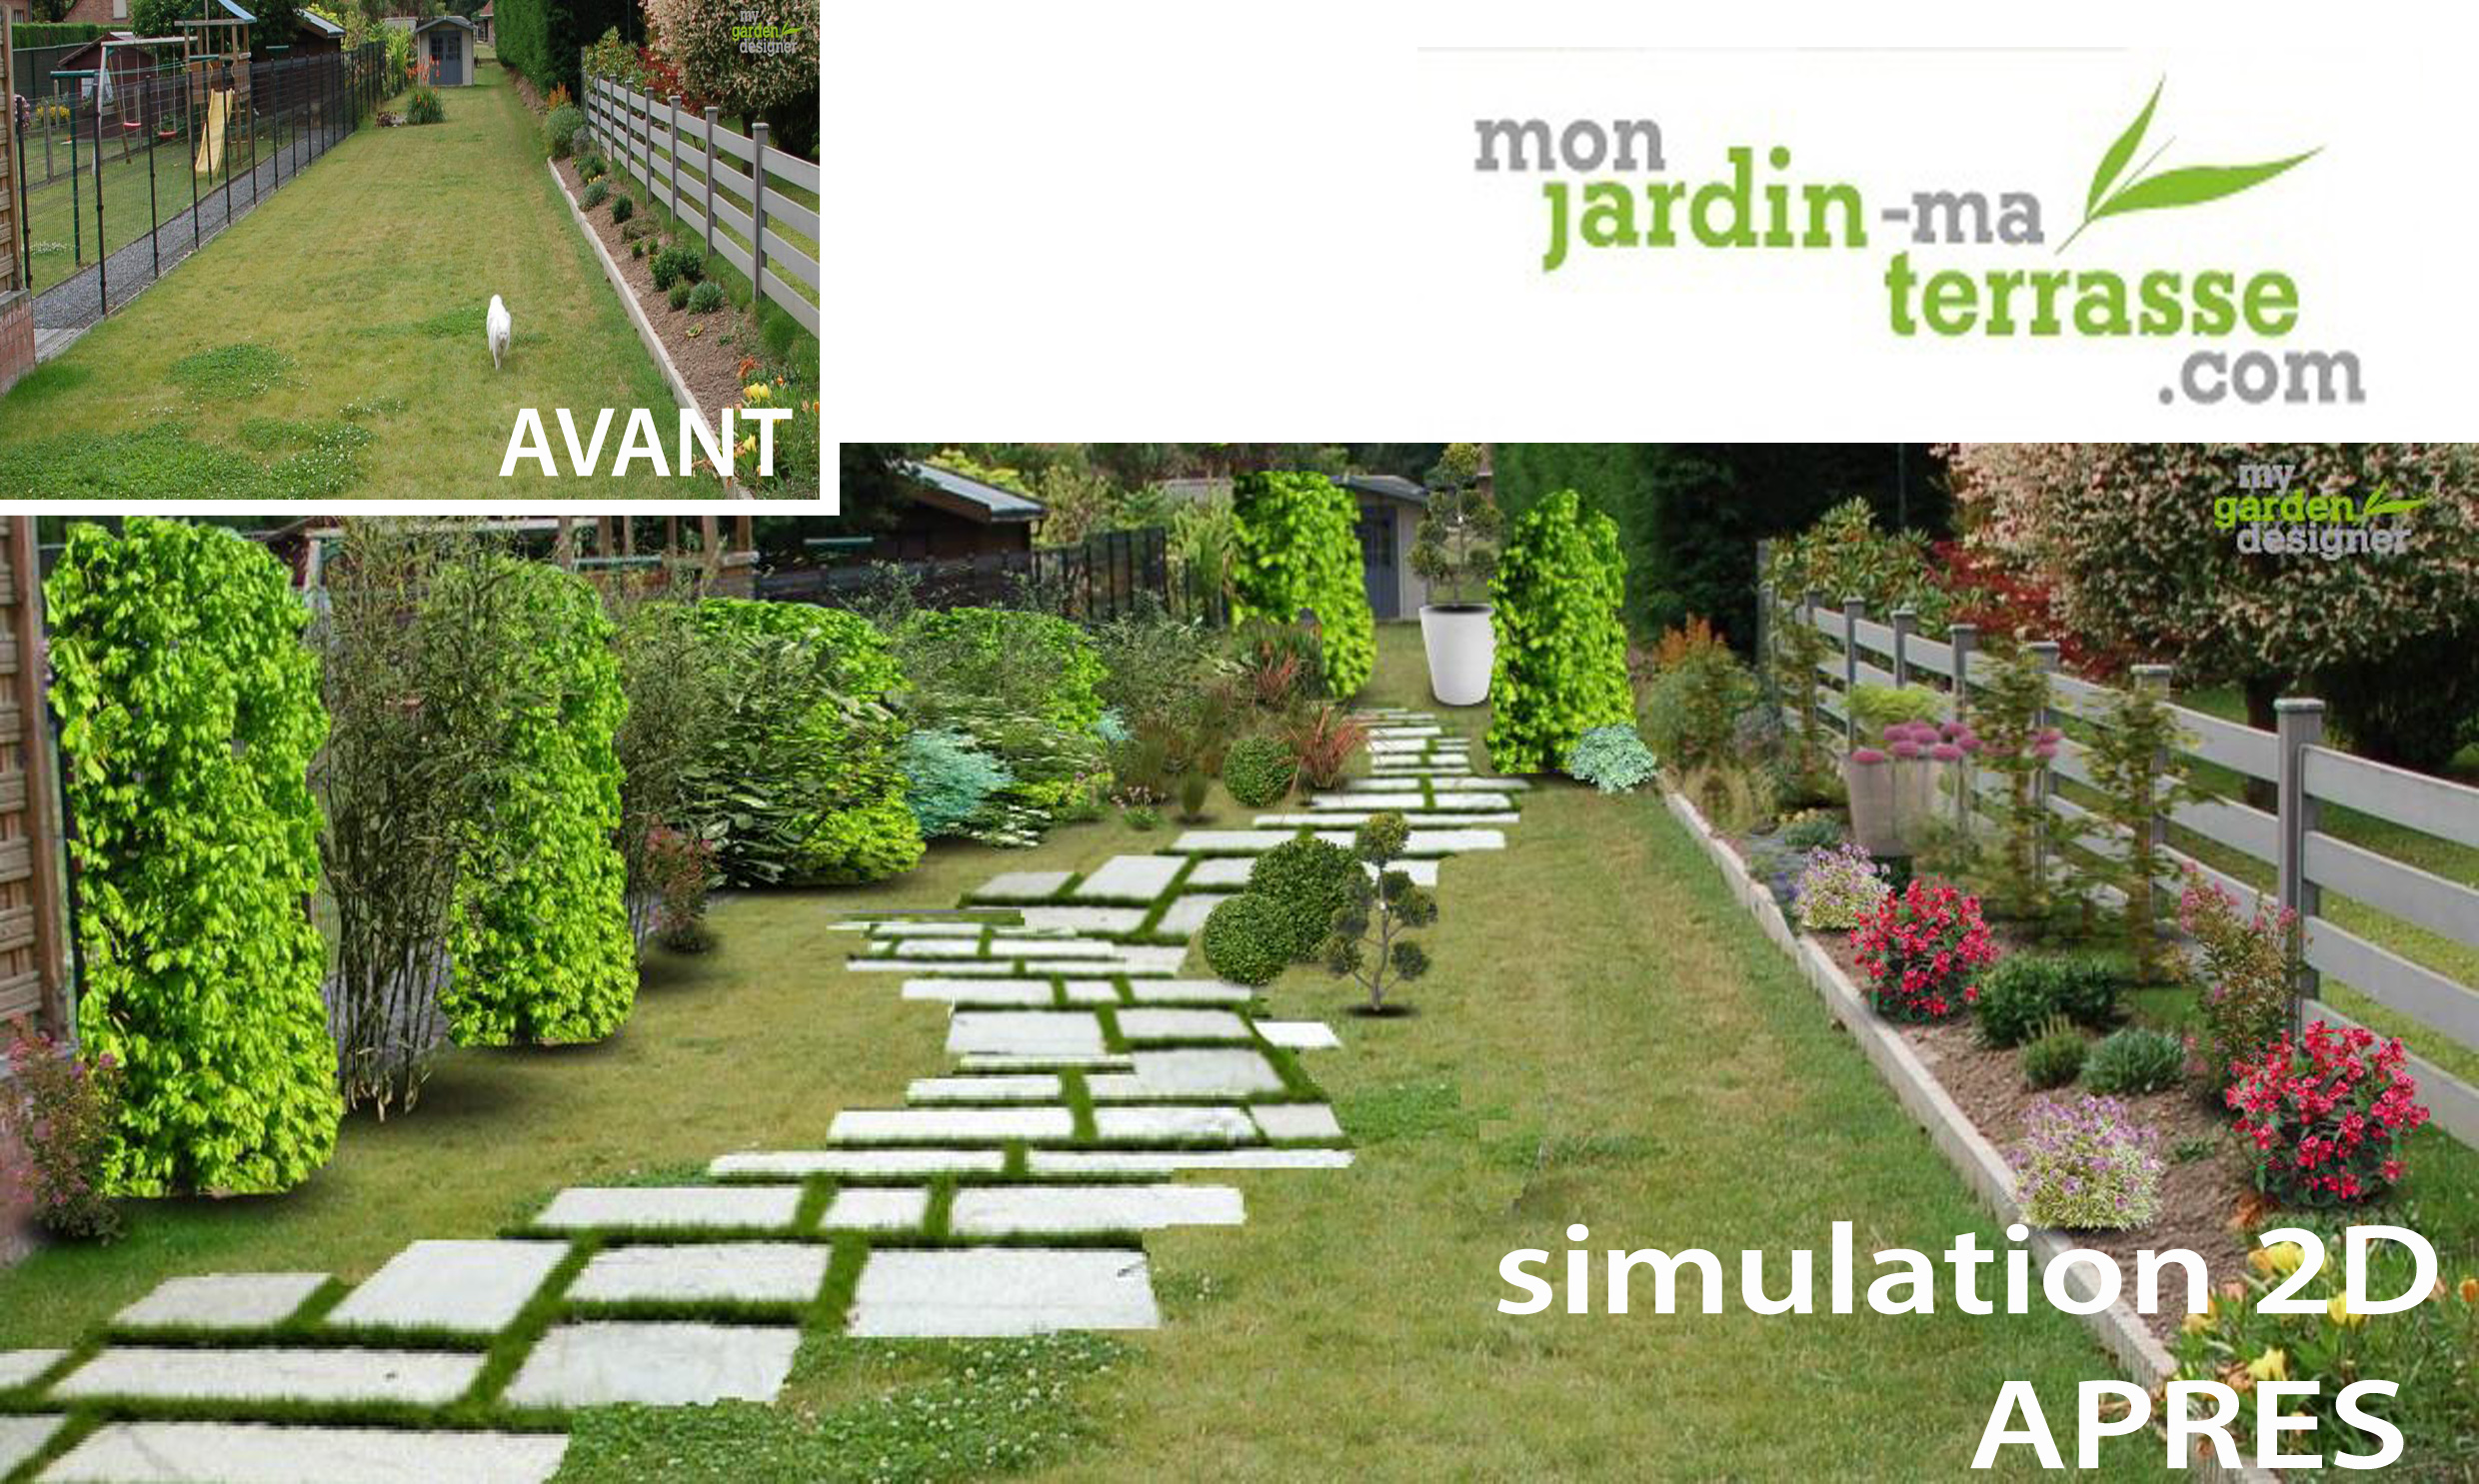 Comment am nager son jardin en longueur monjardin for Amenager le jardin